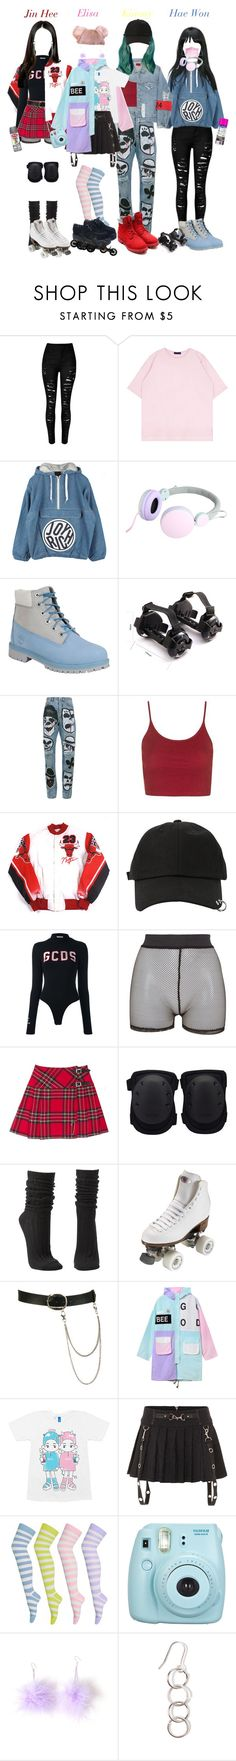 """""""G.U.C. - YOUTH"""" by ruwena-a-w ❤ liked on Polyvore featuring Joyrich, Timberland, Heelys, Faith Connexion, Topshop, StyleNanda, GCDS, Bitching & Junkfood, Charlotte Russe and Riedell"""